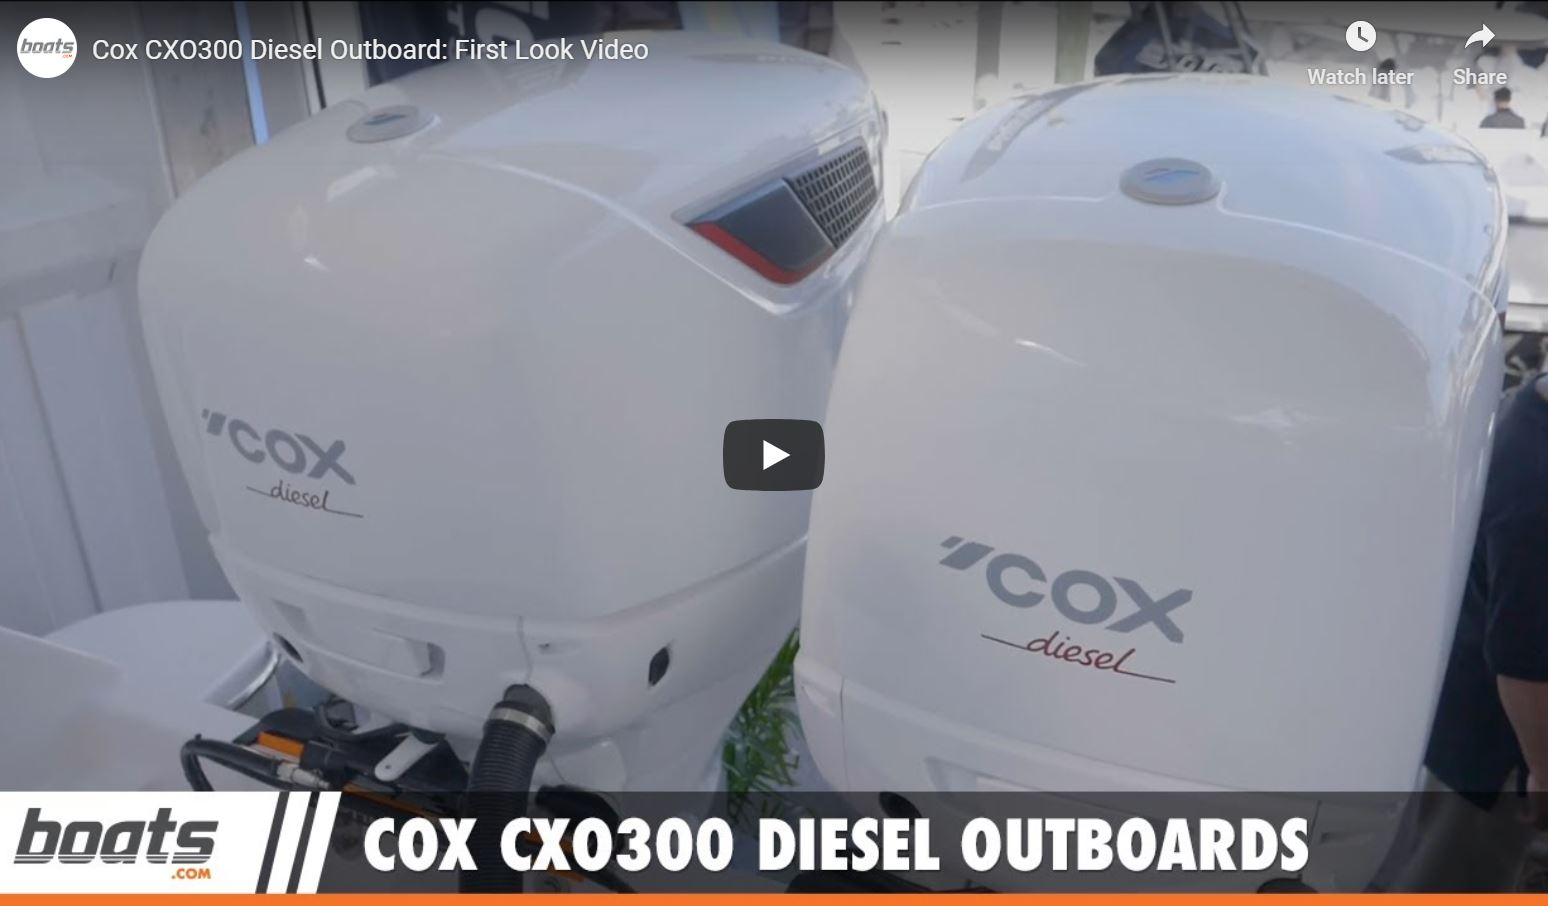 Cox CXO300 Diesel Outboard Review